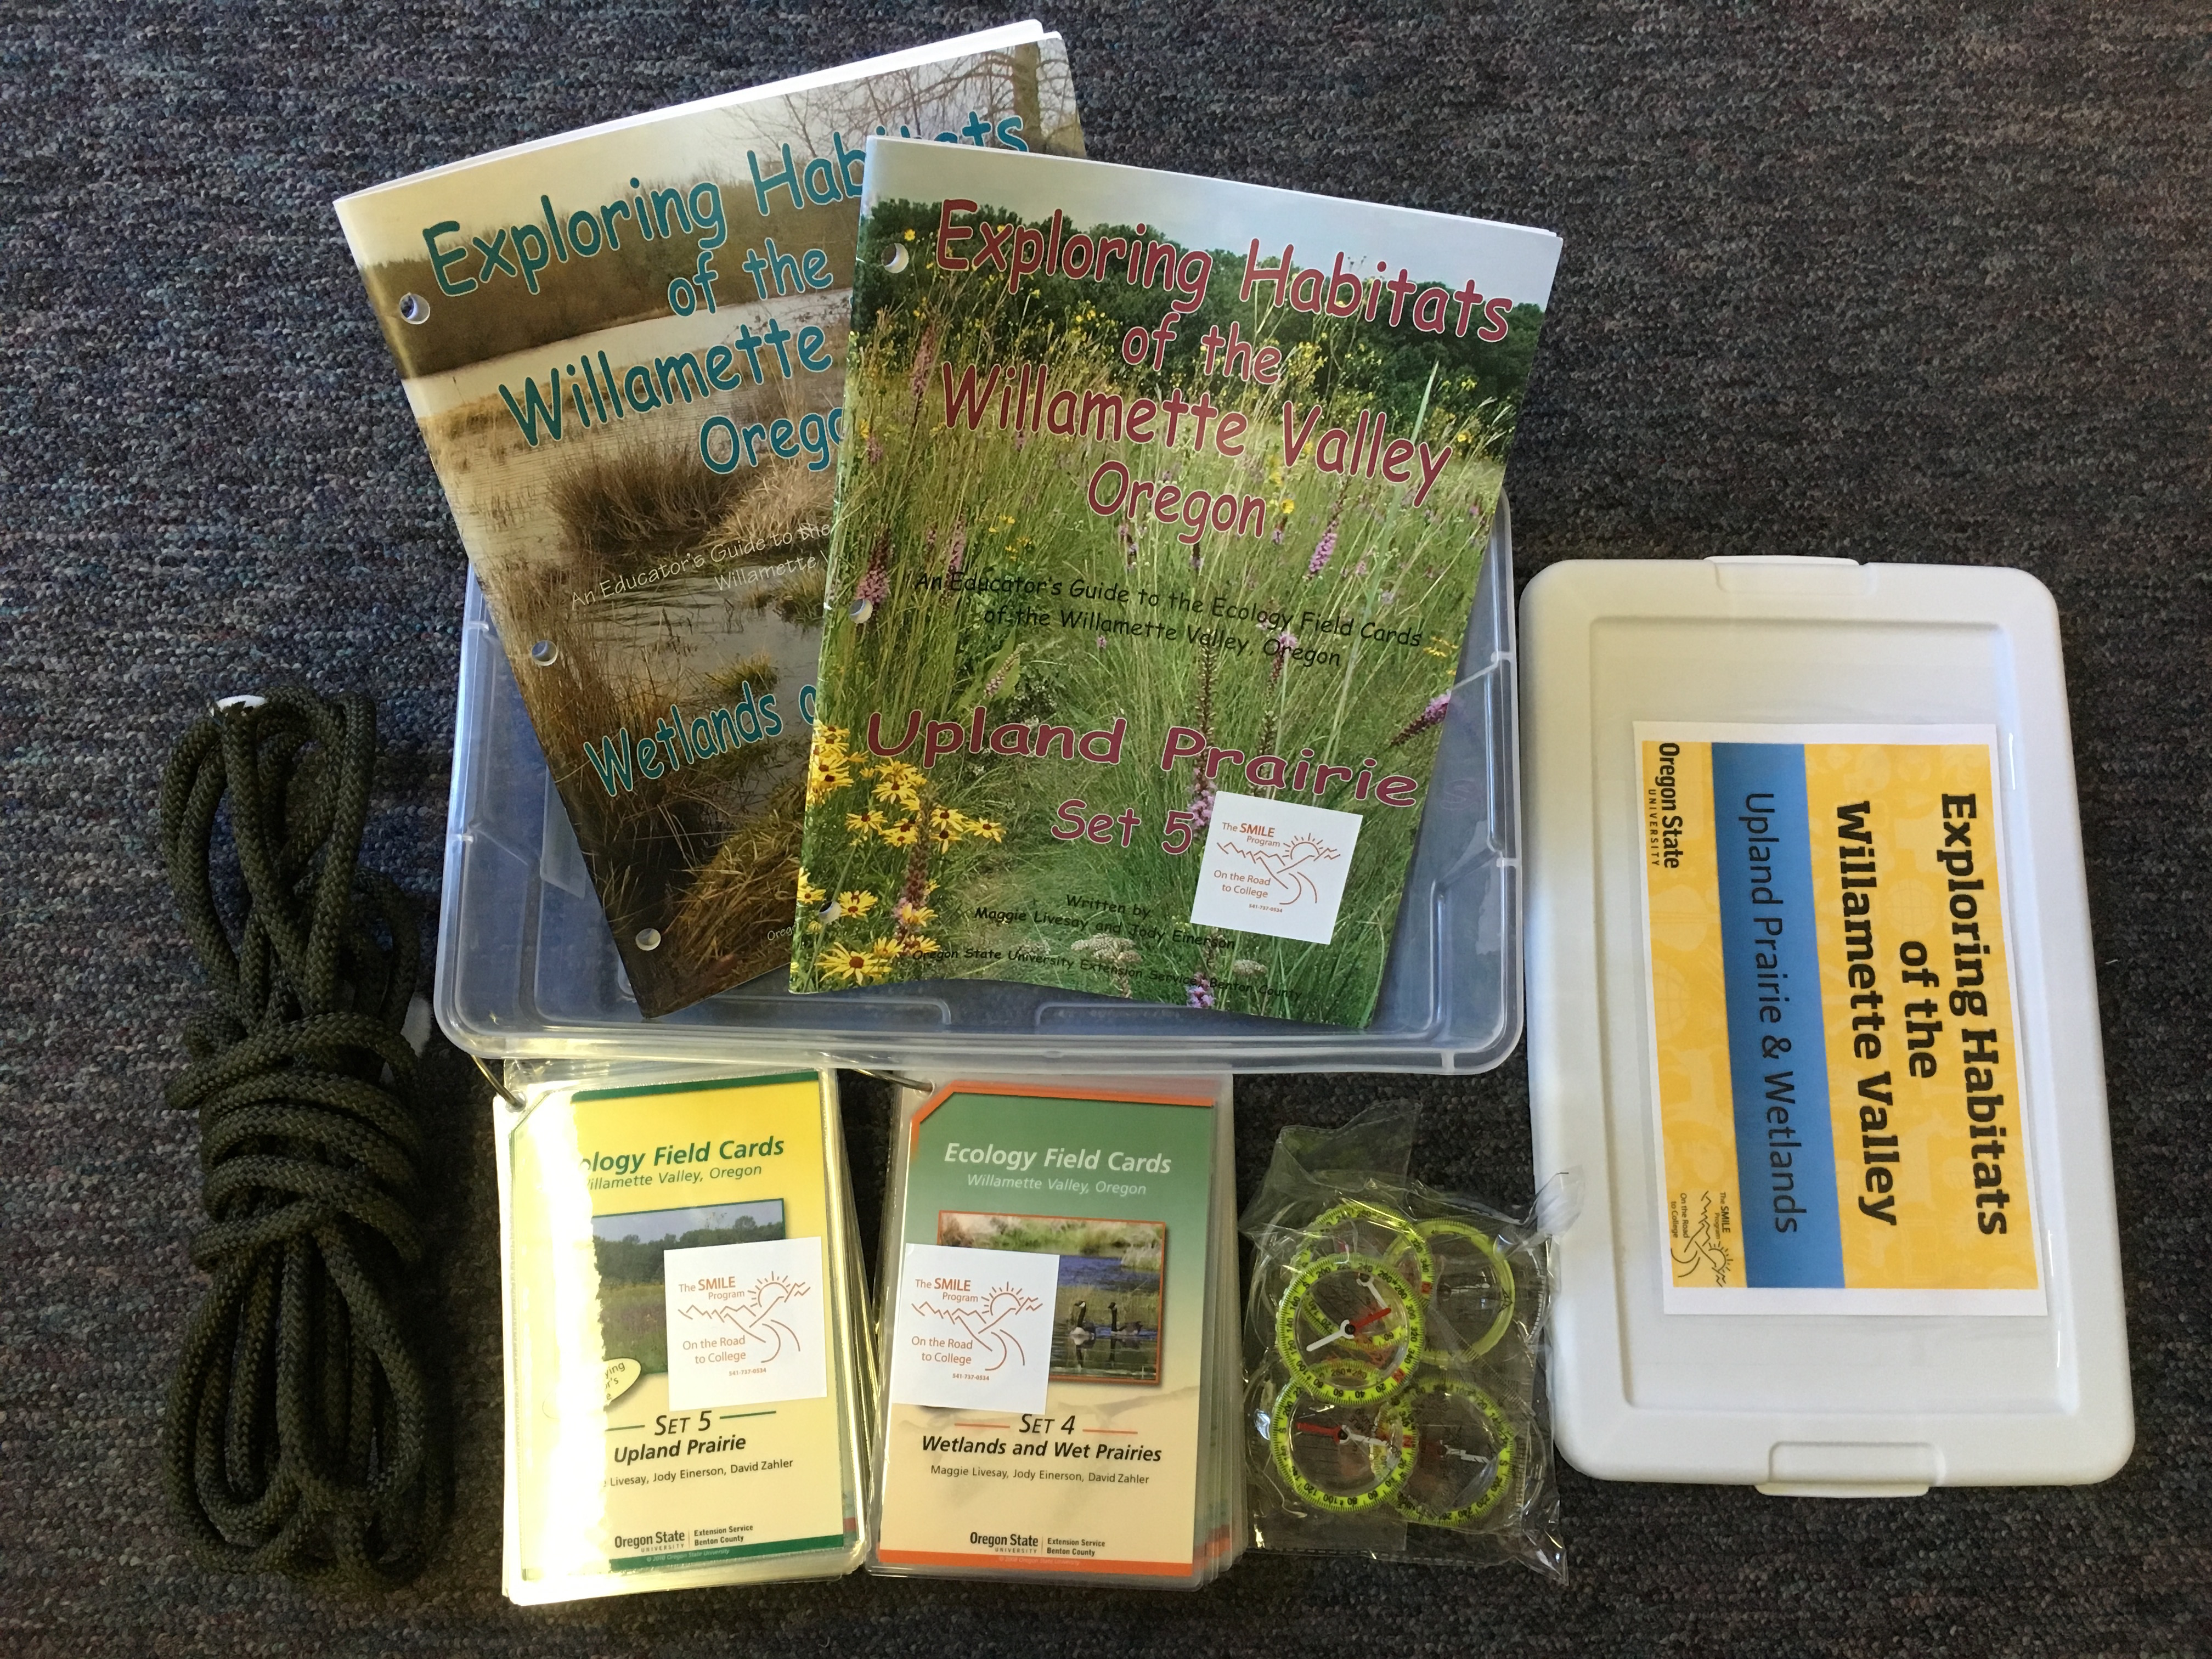 Contents of Exploring Habitats Upland Prairie and Wetlands Kit